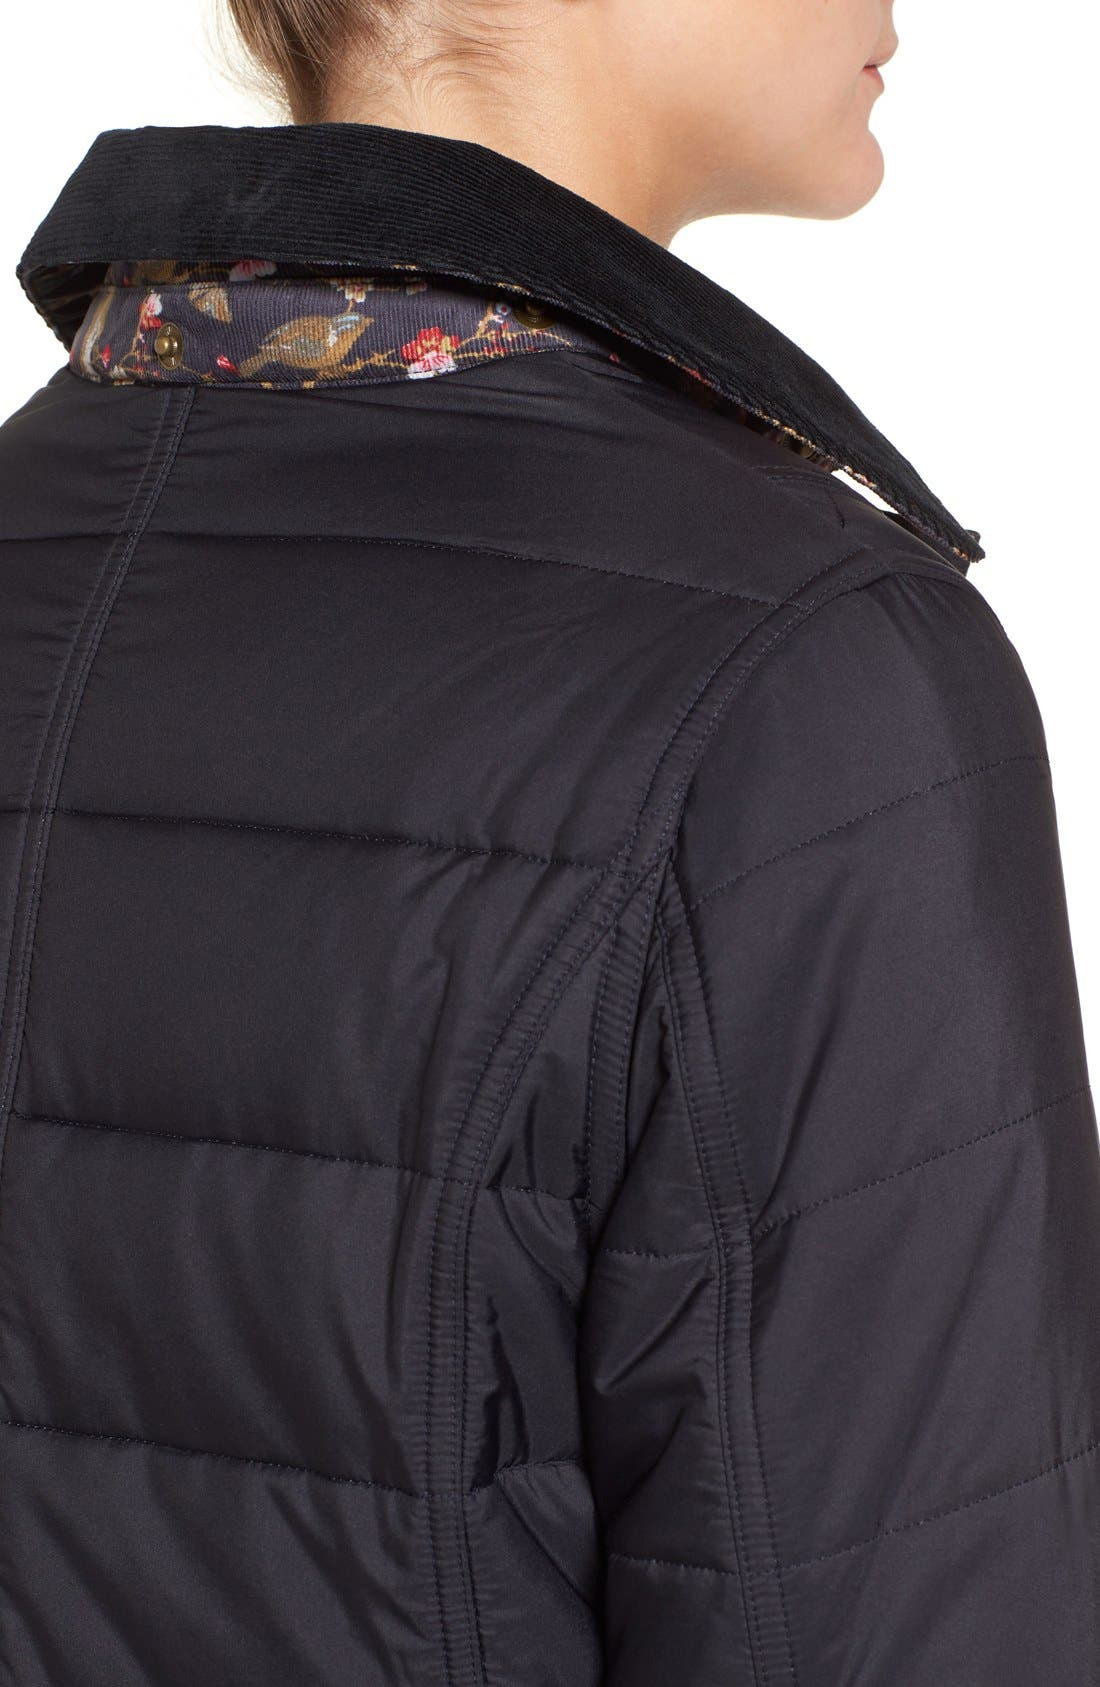 Alternate Image 4  - Barbour 'Ilkley' Water Resistant Quilted Jacket